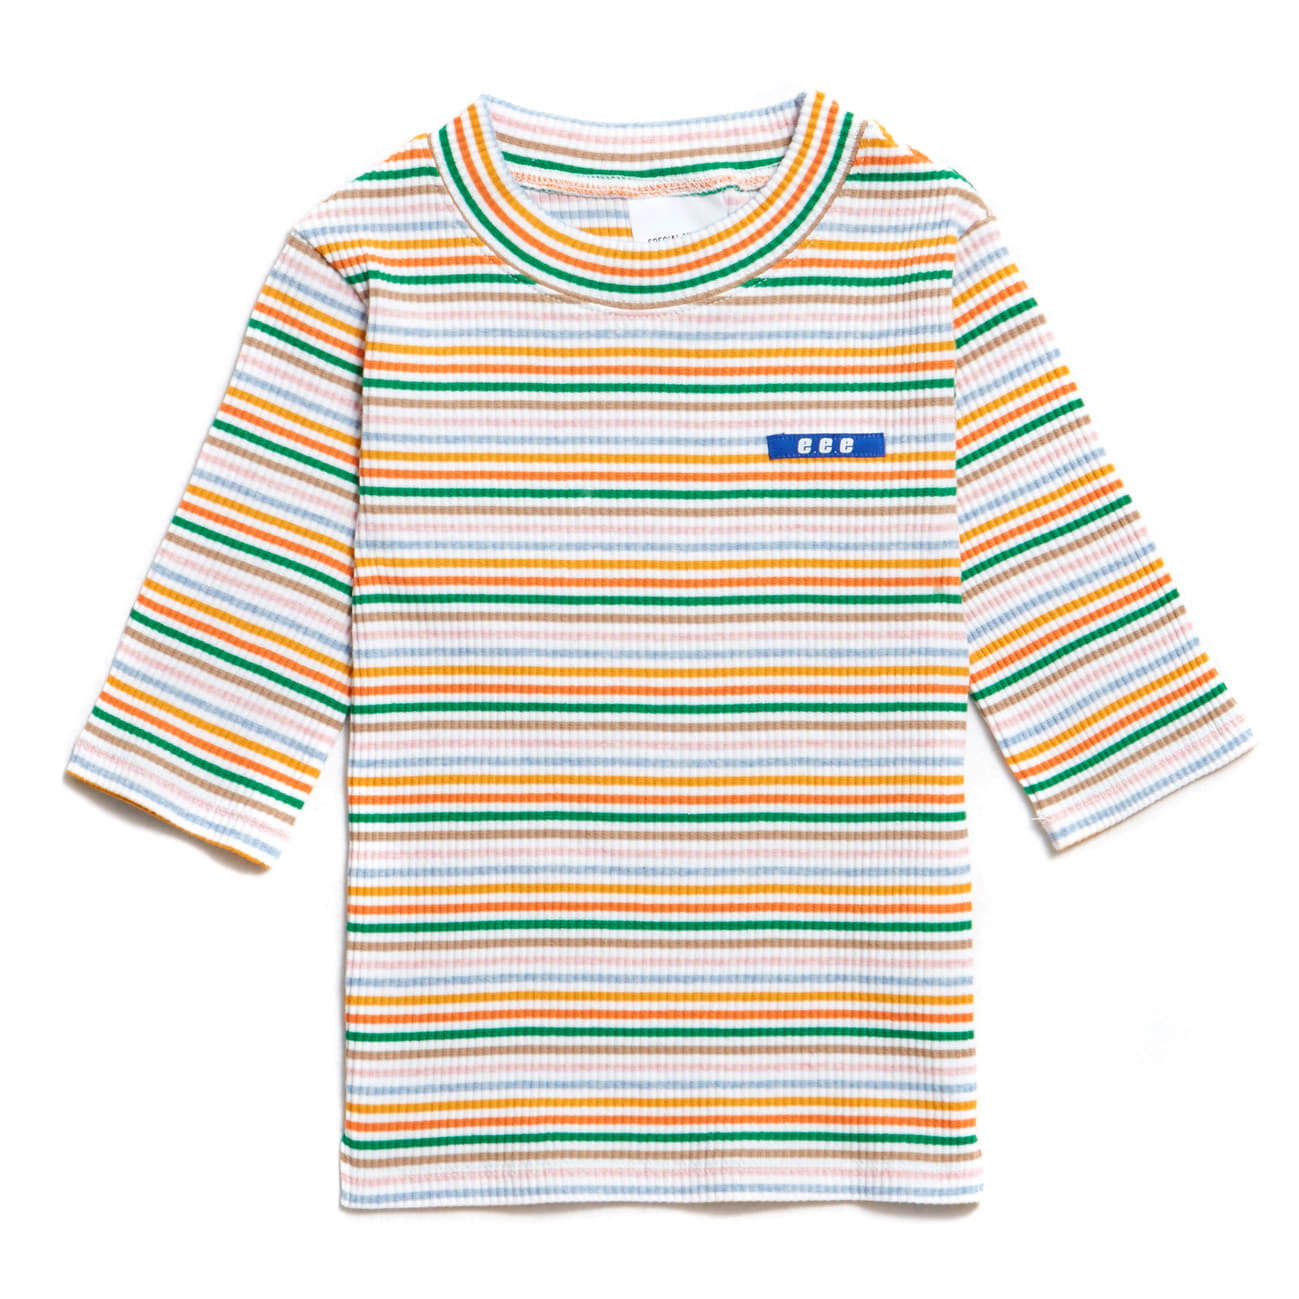 EVAN MULTI STRIPE - WHITE&GREEN